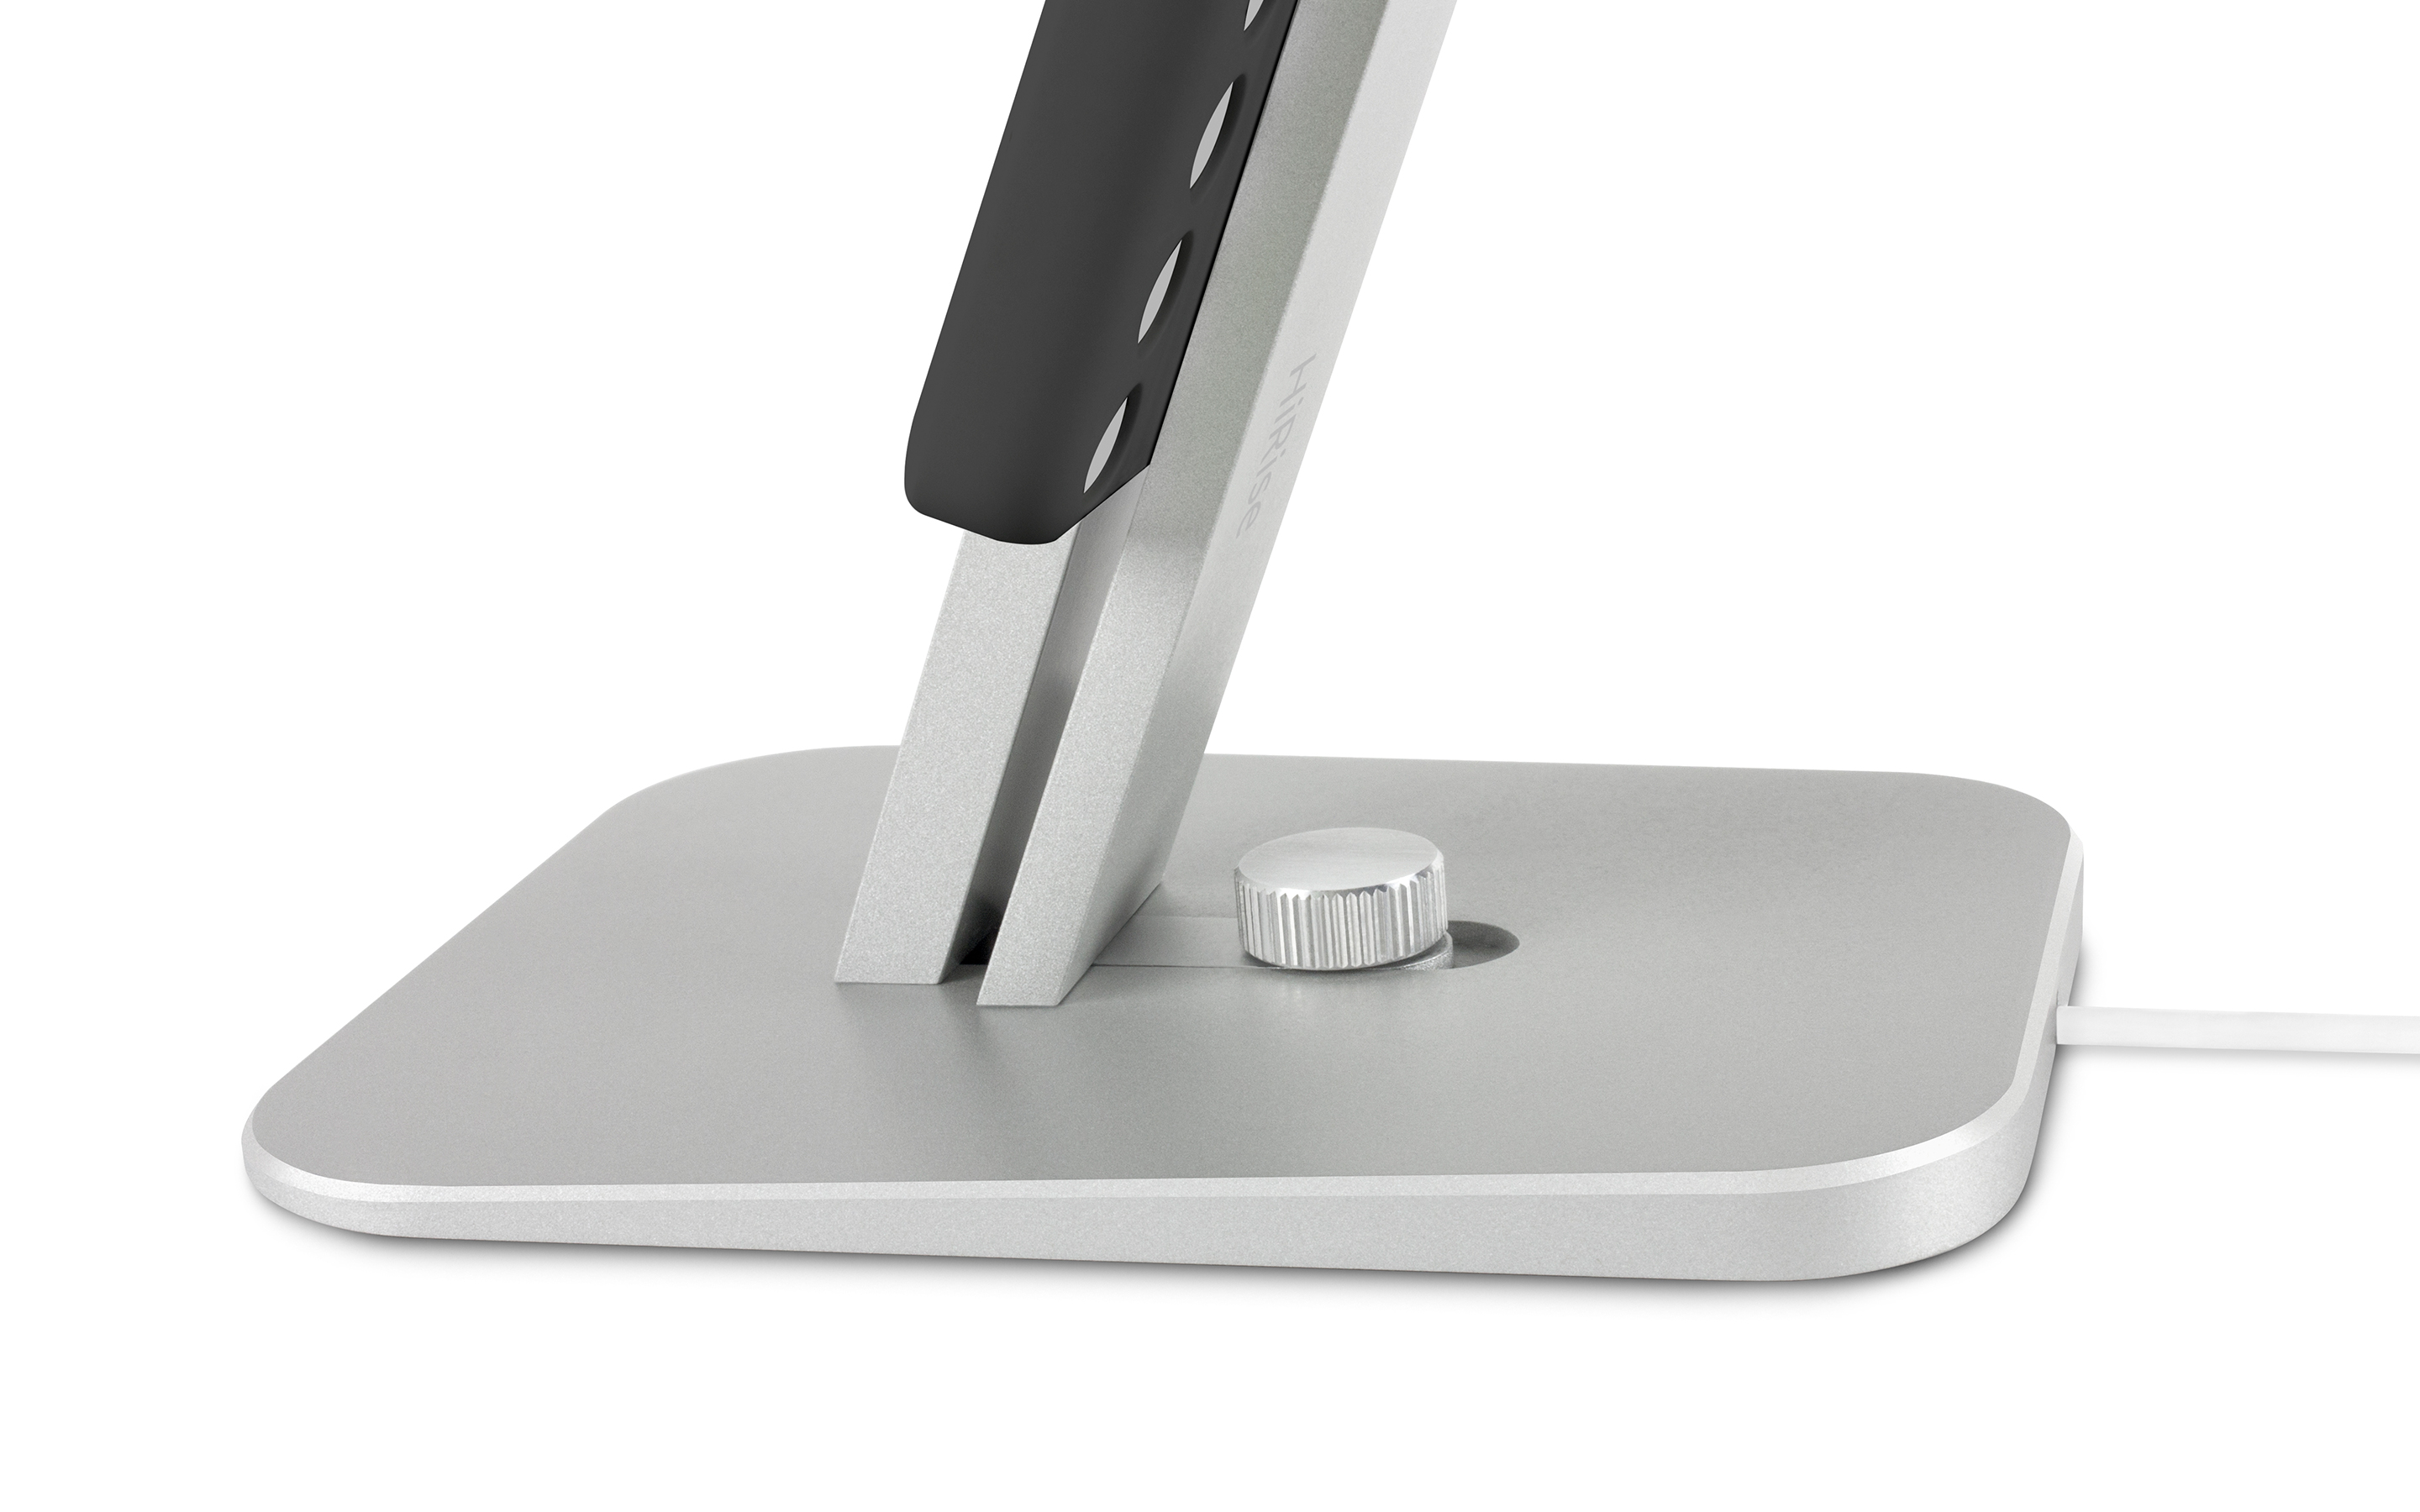 HiRise Deluxe for iPhone & iPad  — Silver